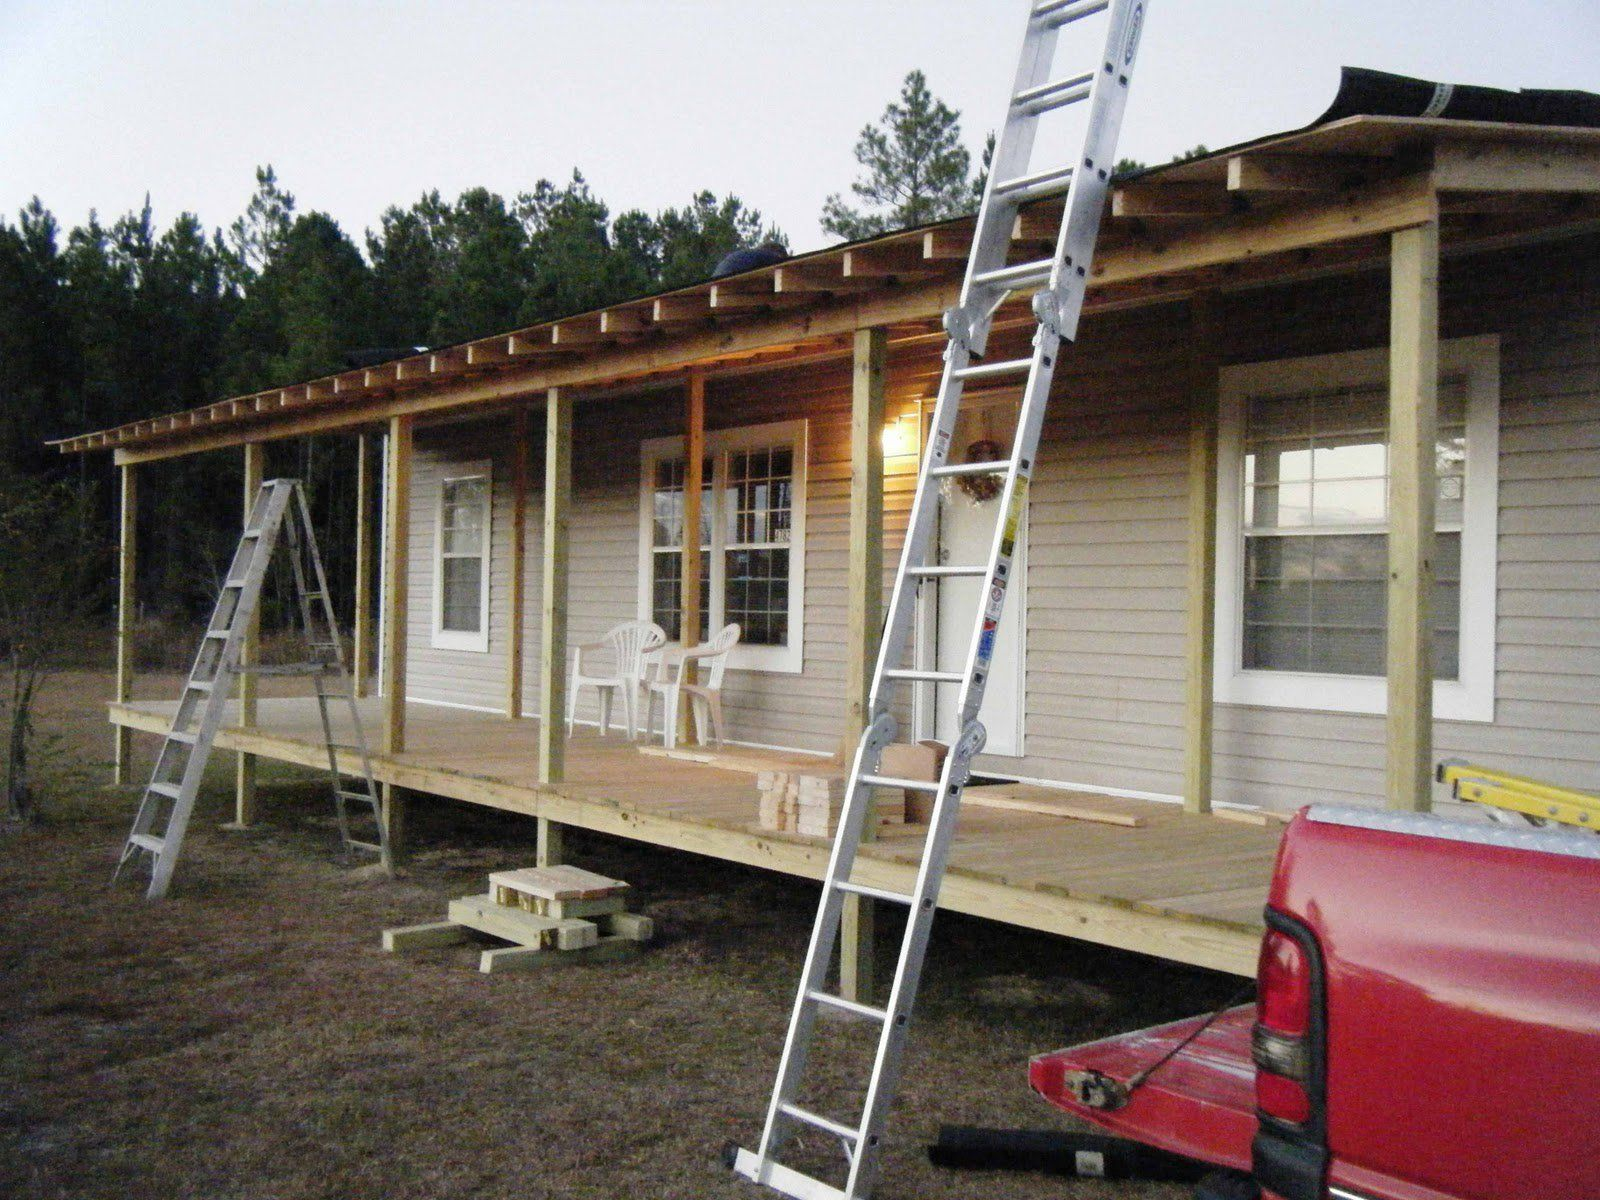 build a porch on a mobile home - Google Search